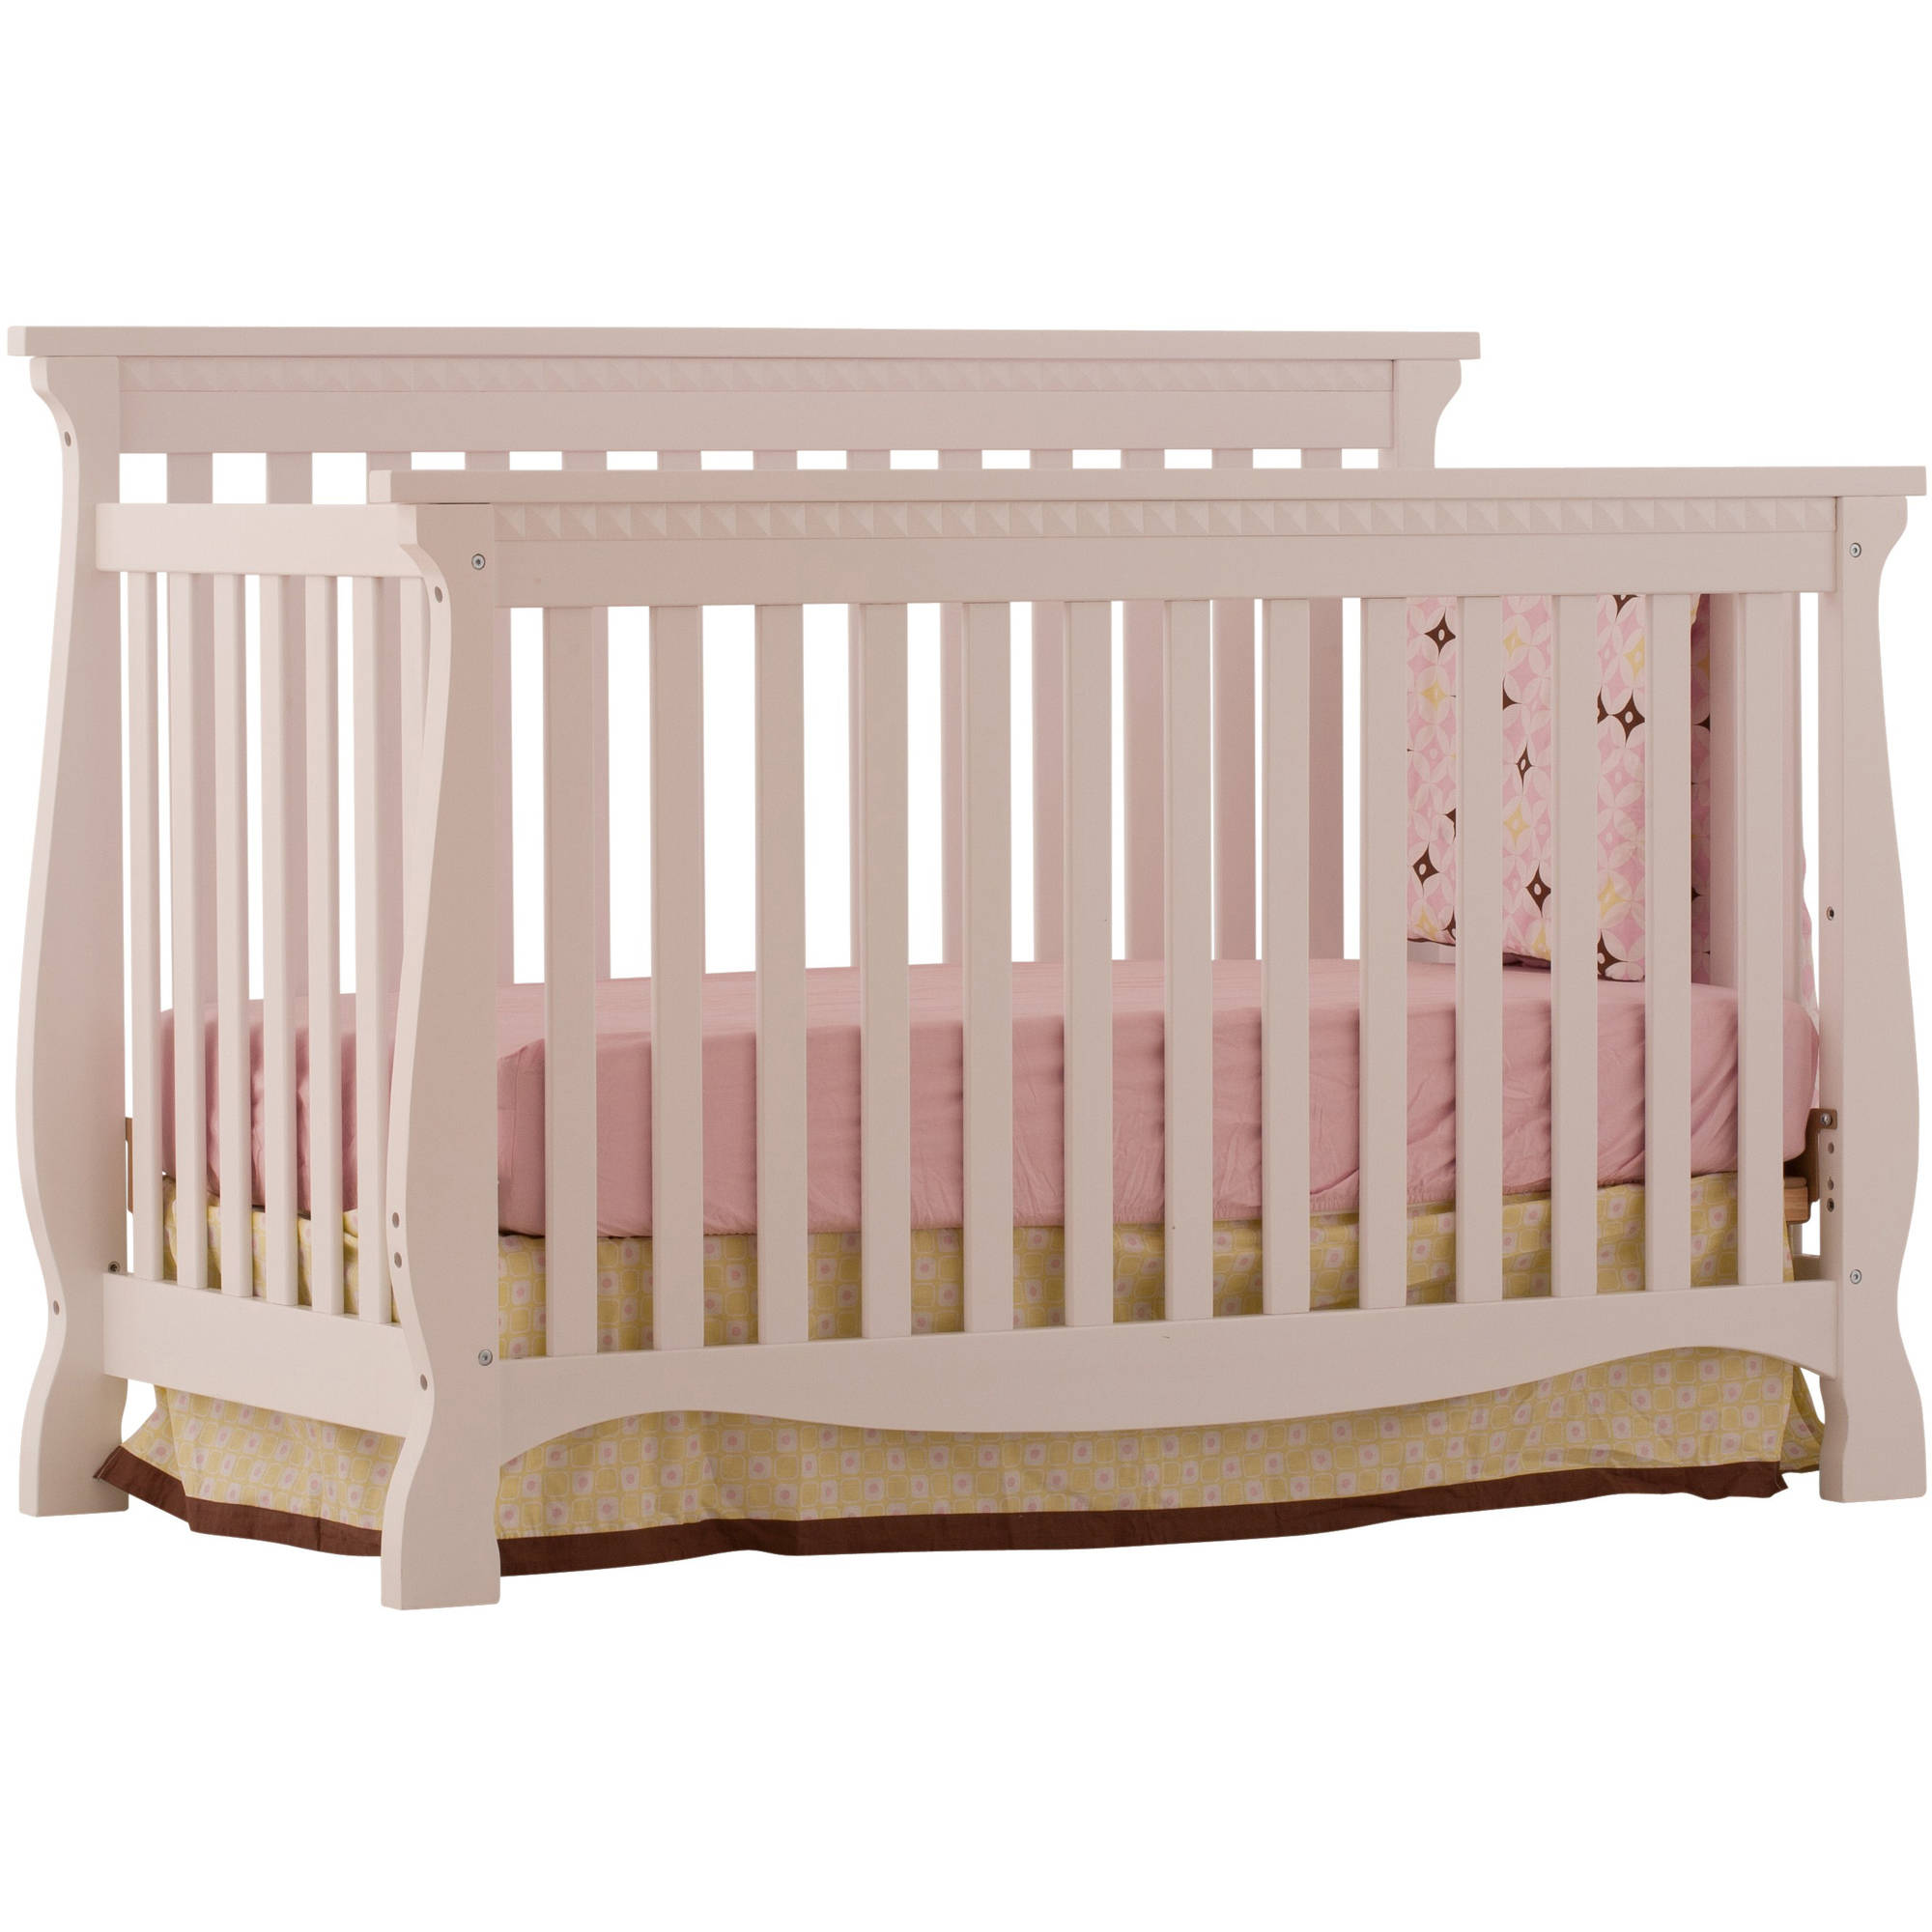 Storkcraft - Venetian Fixed-Side Convertible Crib, Choose Your Finish